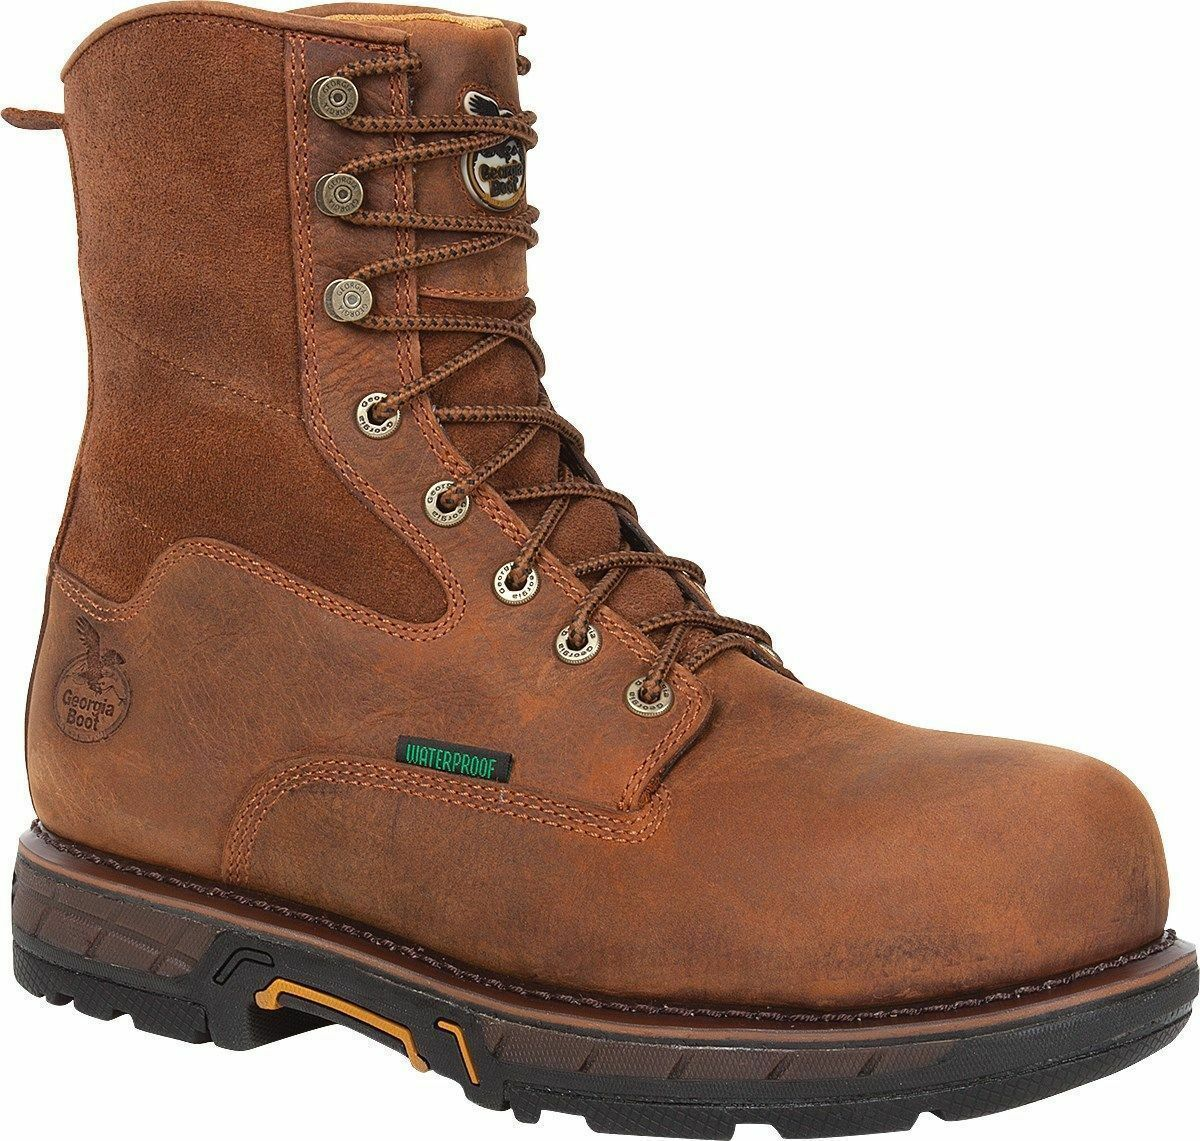 MENS GEORGIA COMPOSITE TOE WORK BOOT STYLE GBOT019